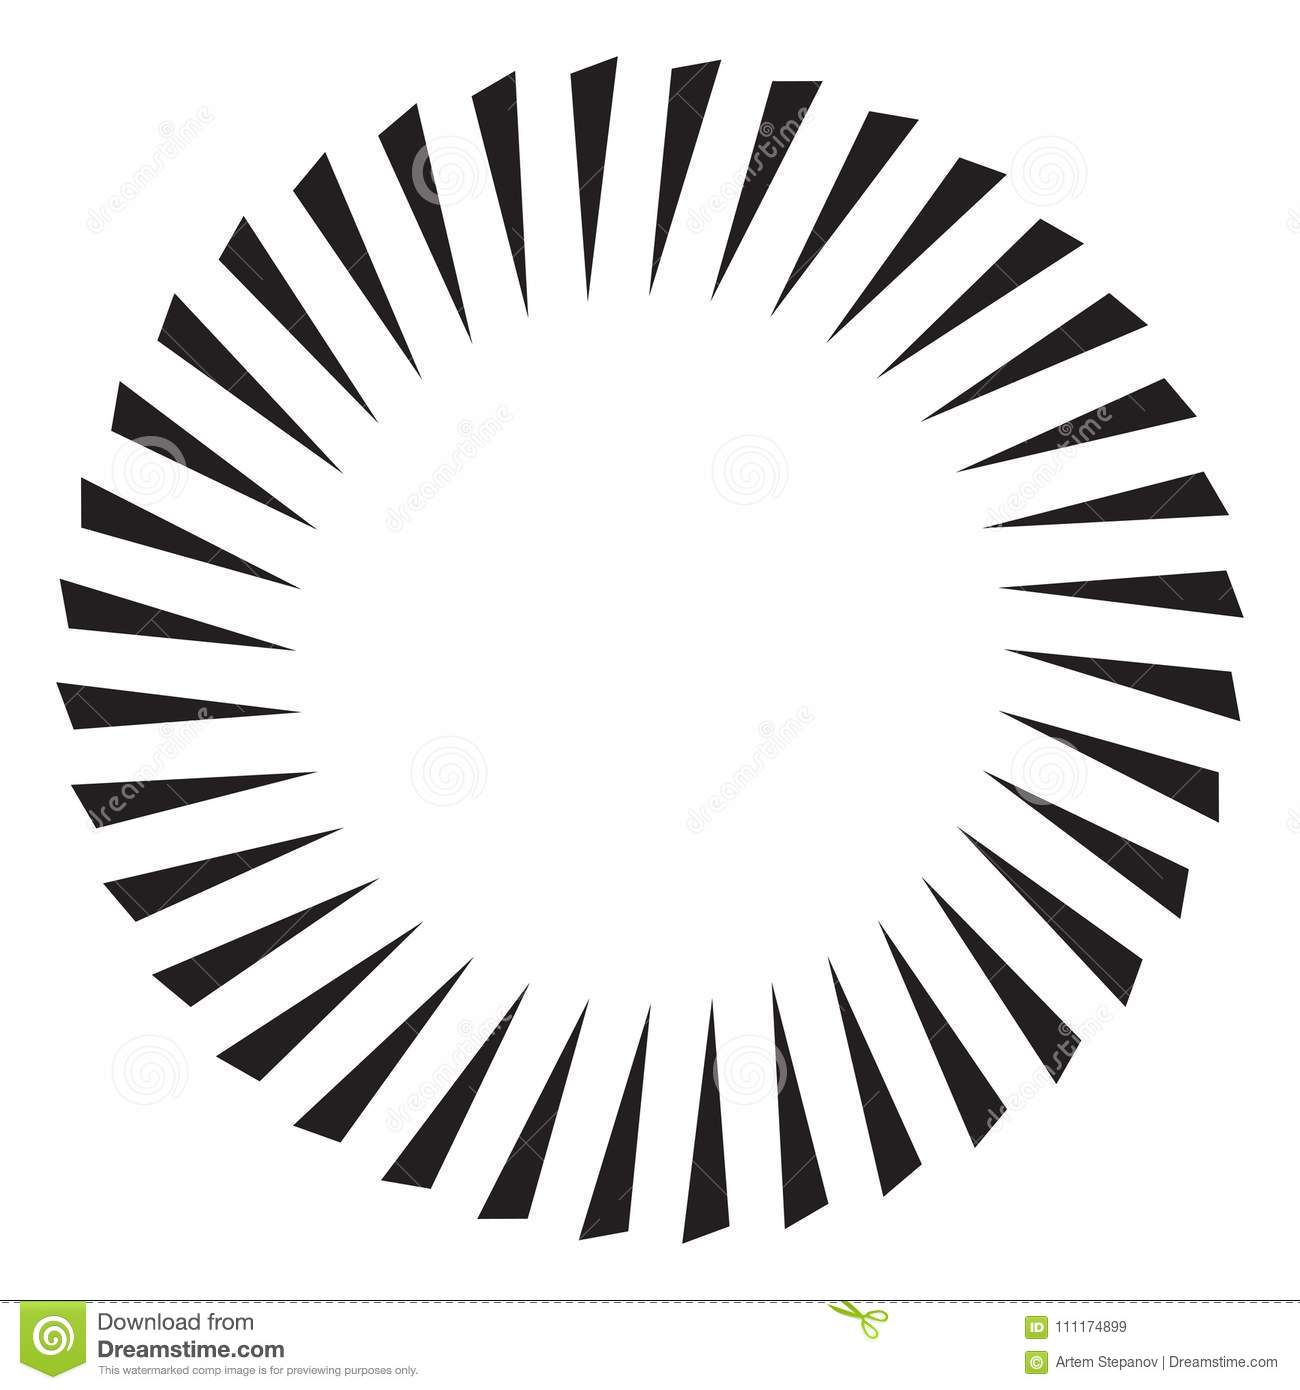 Black and white sun vector icon star pictograph speed line fast motion background